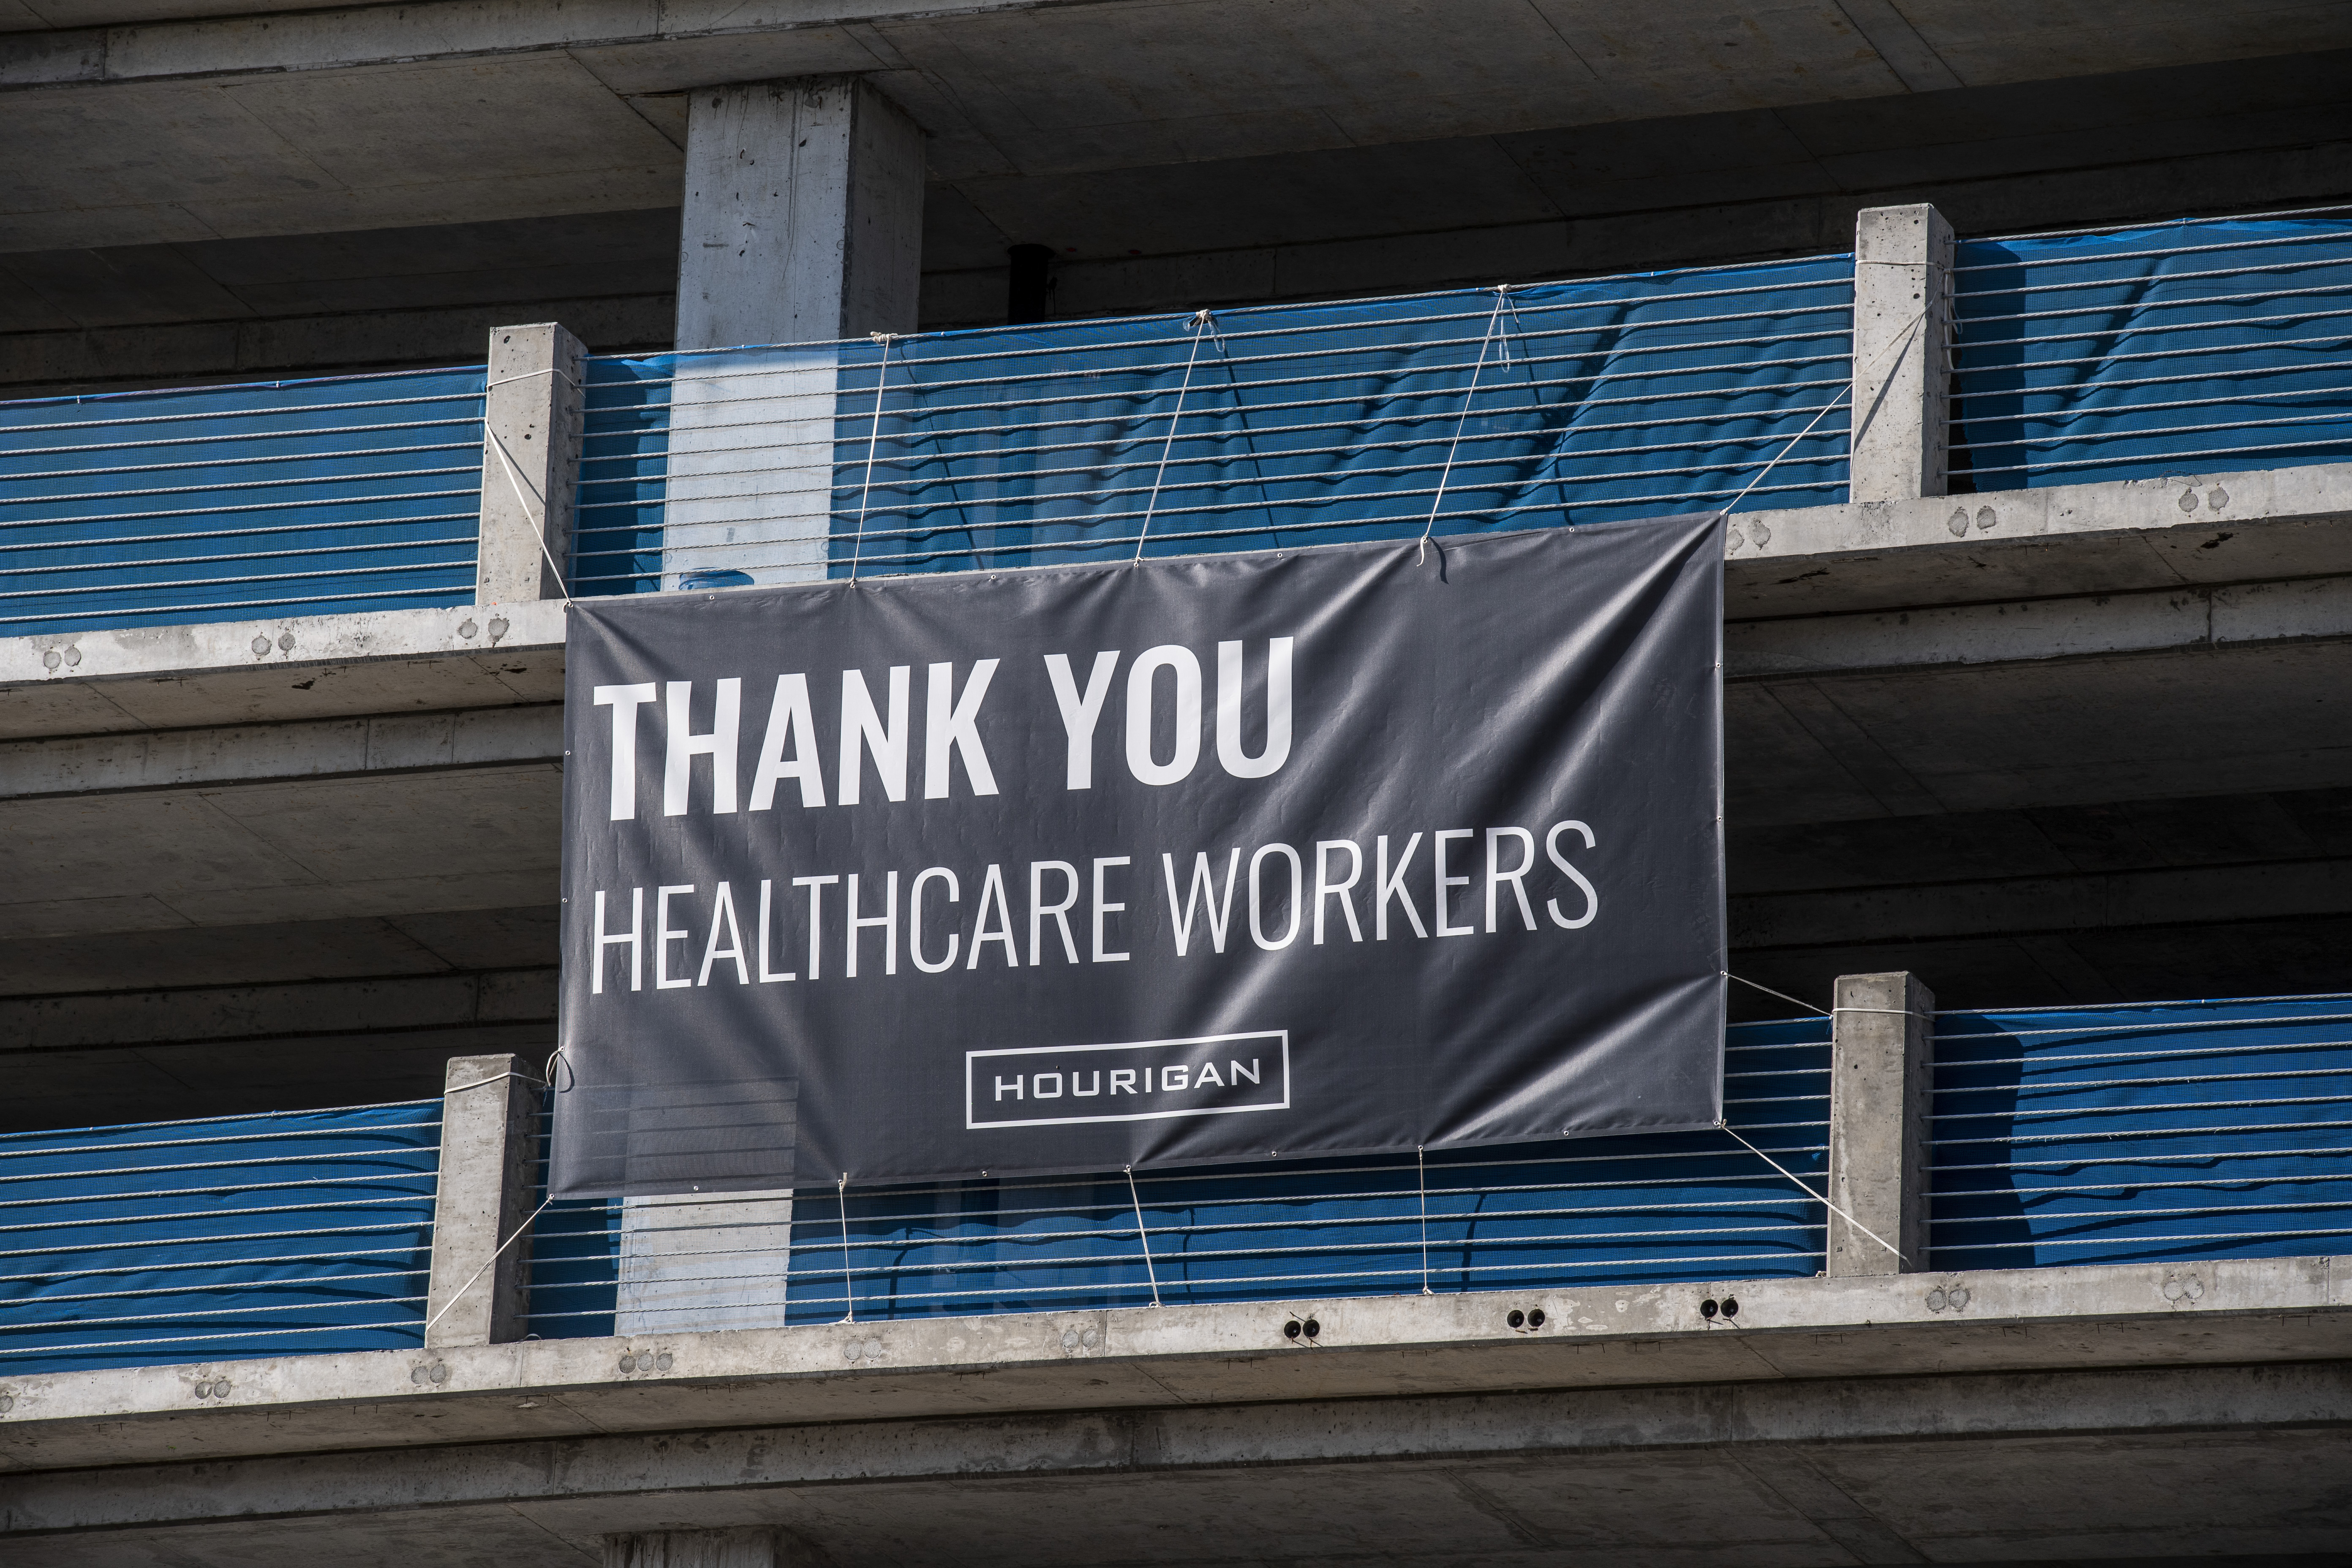 Thank you health care workers.